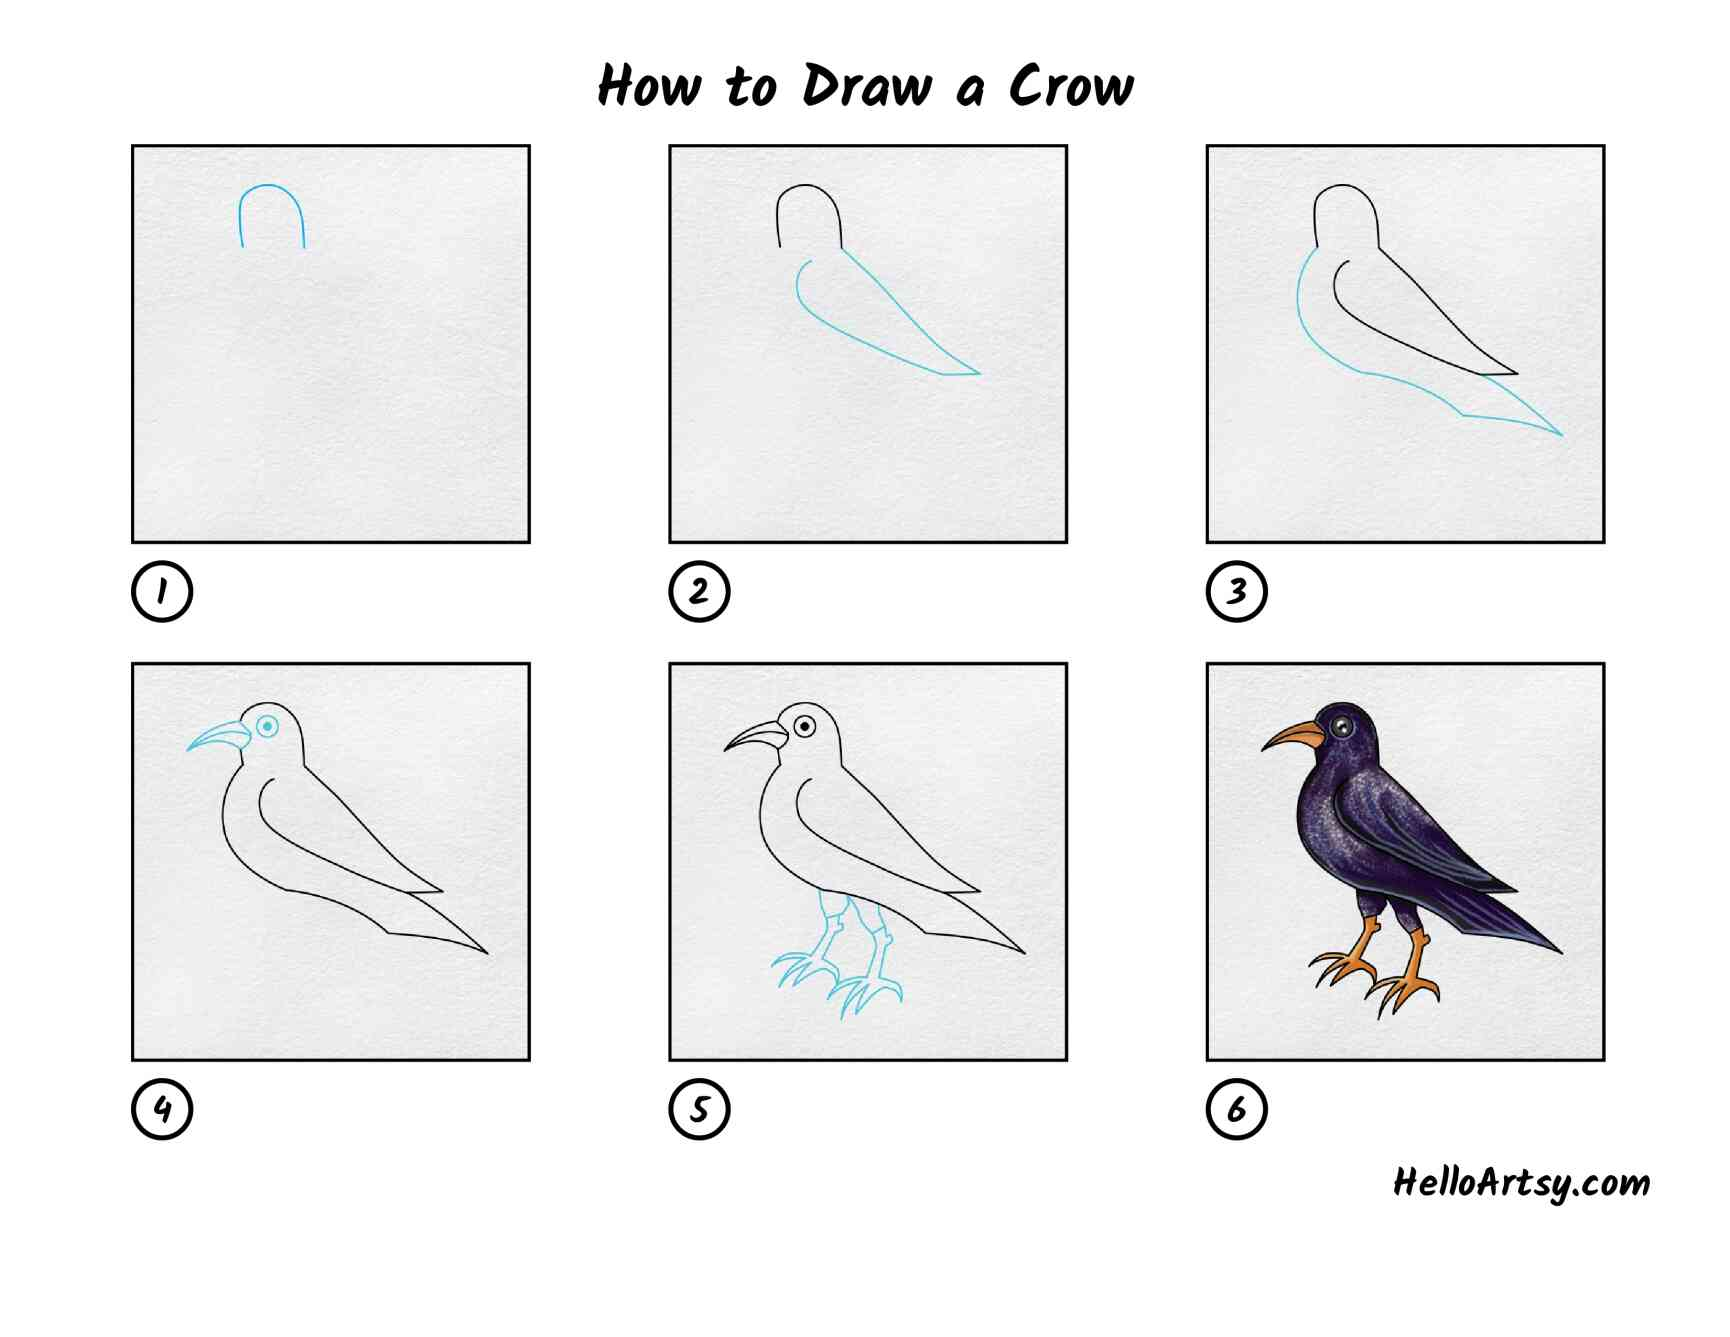 How To Draw A Crow: All Steps